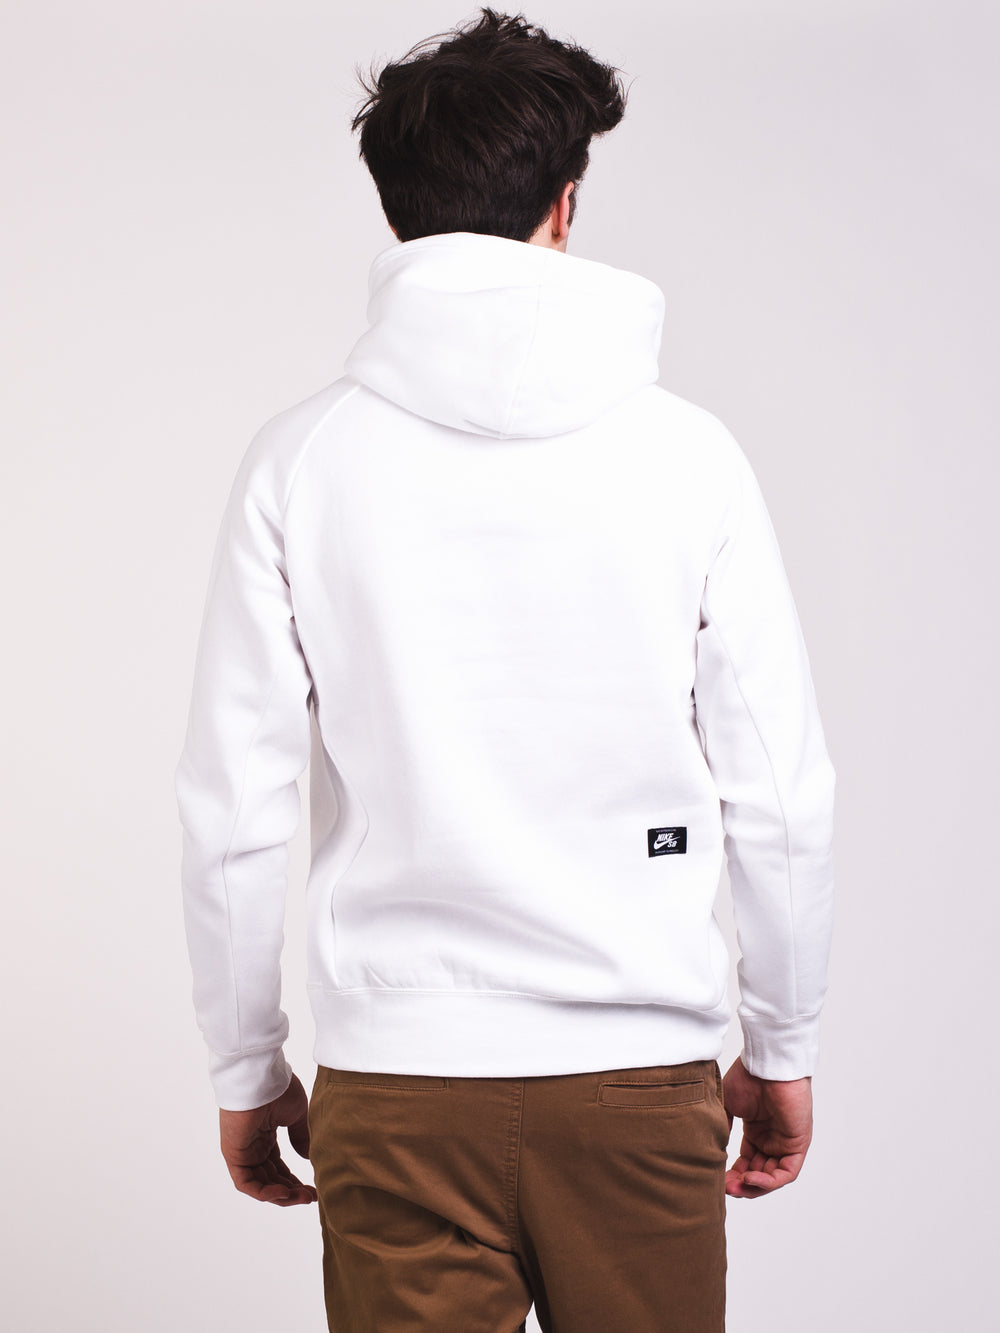 MENS SB ICON PULL OVER HOODIE - WHT/ROY